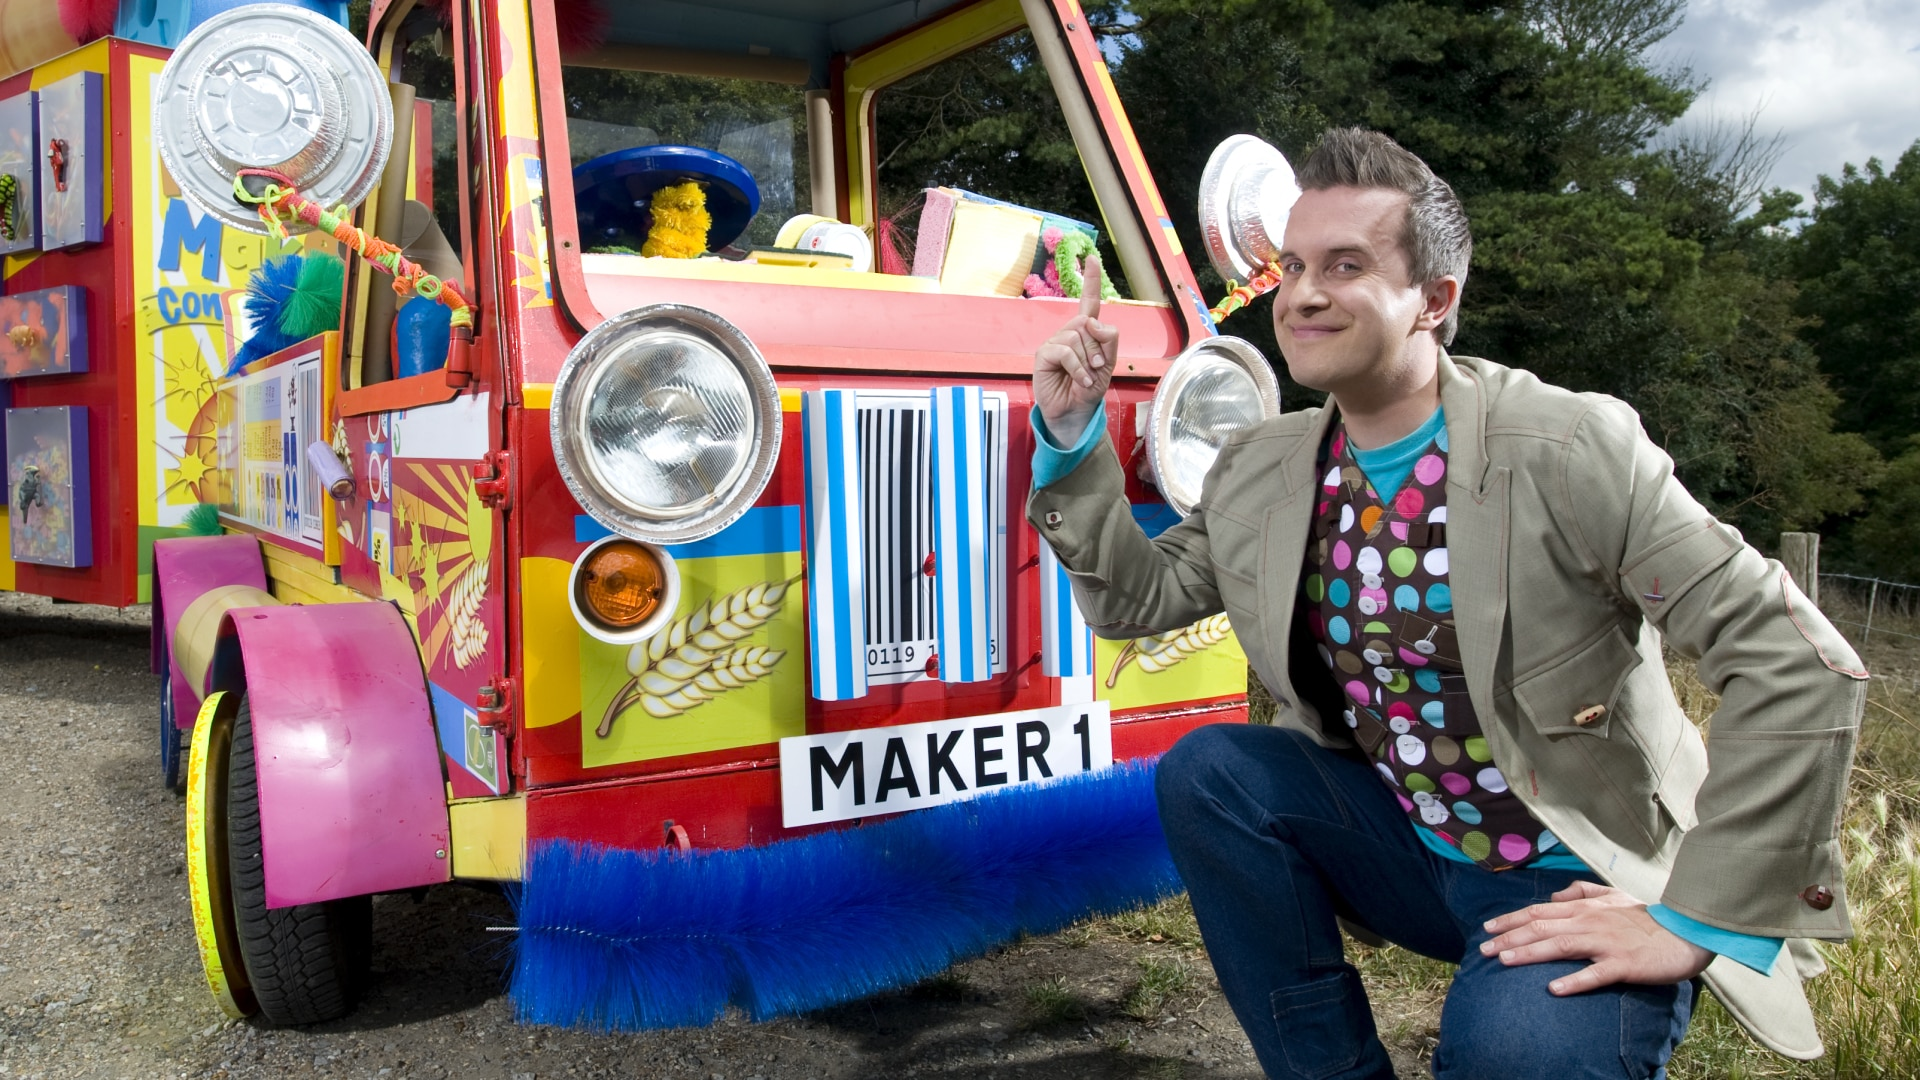 Mister Maker Comes To Town 21